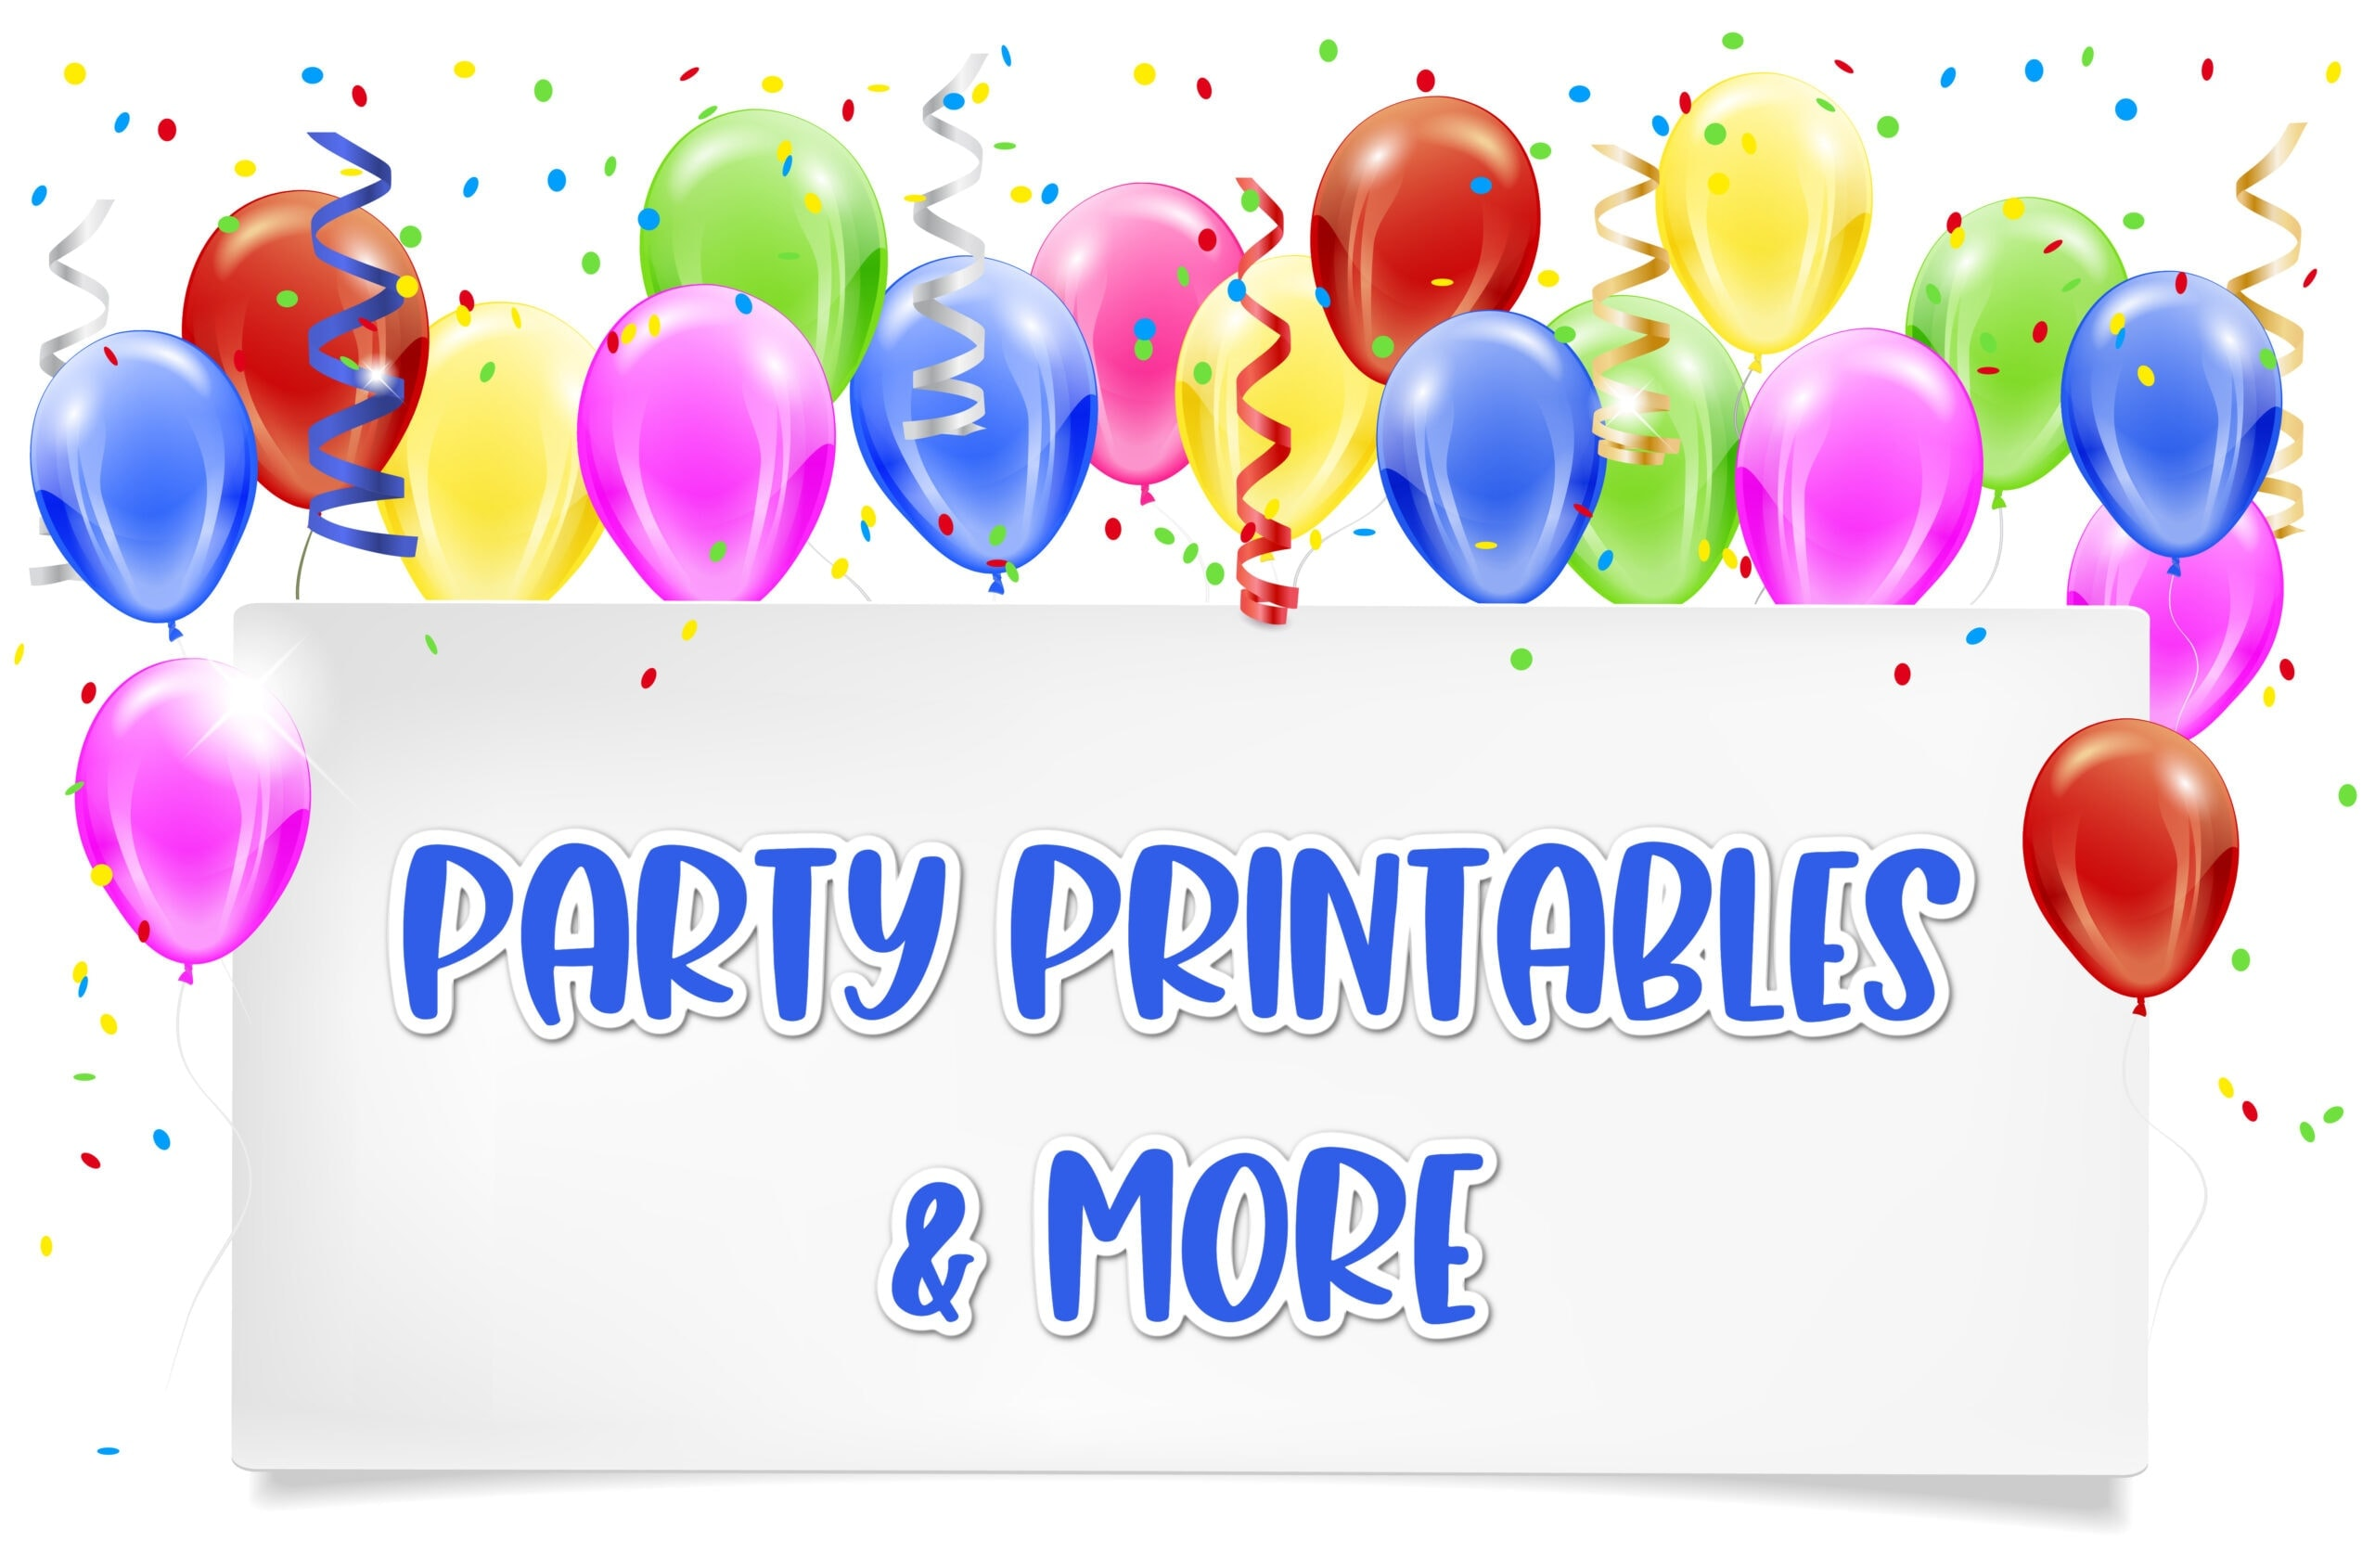 Balloon banner with party printables sign